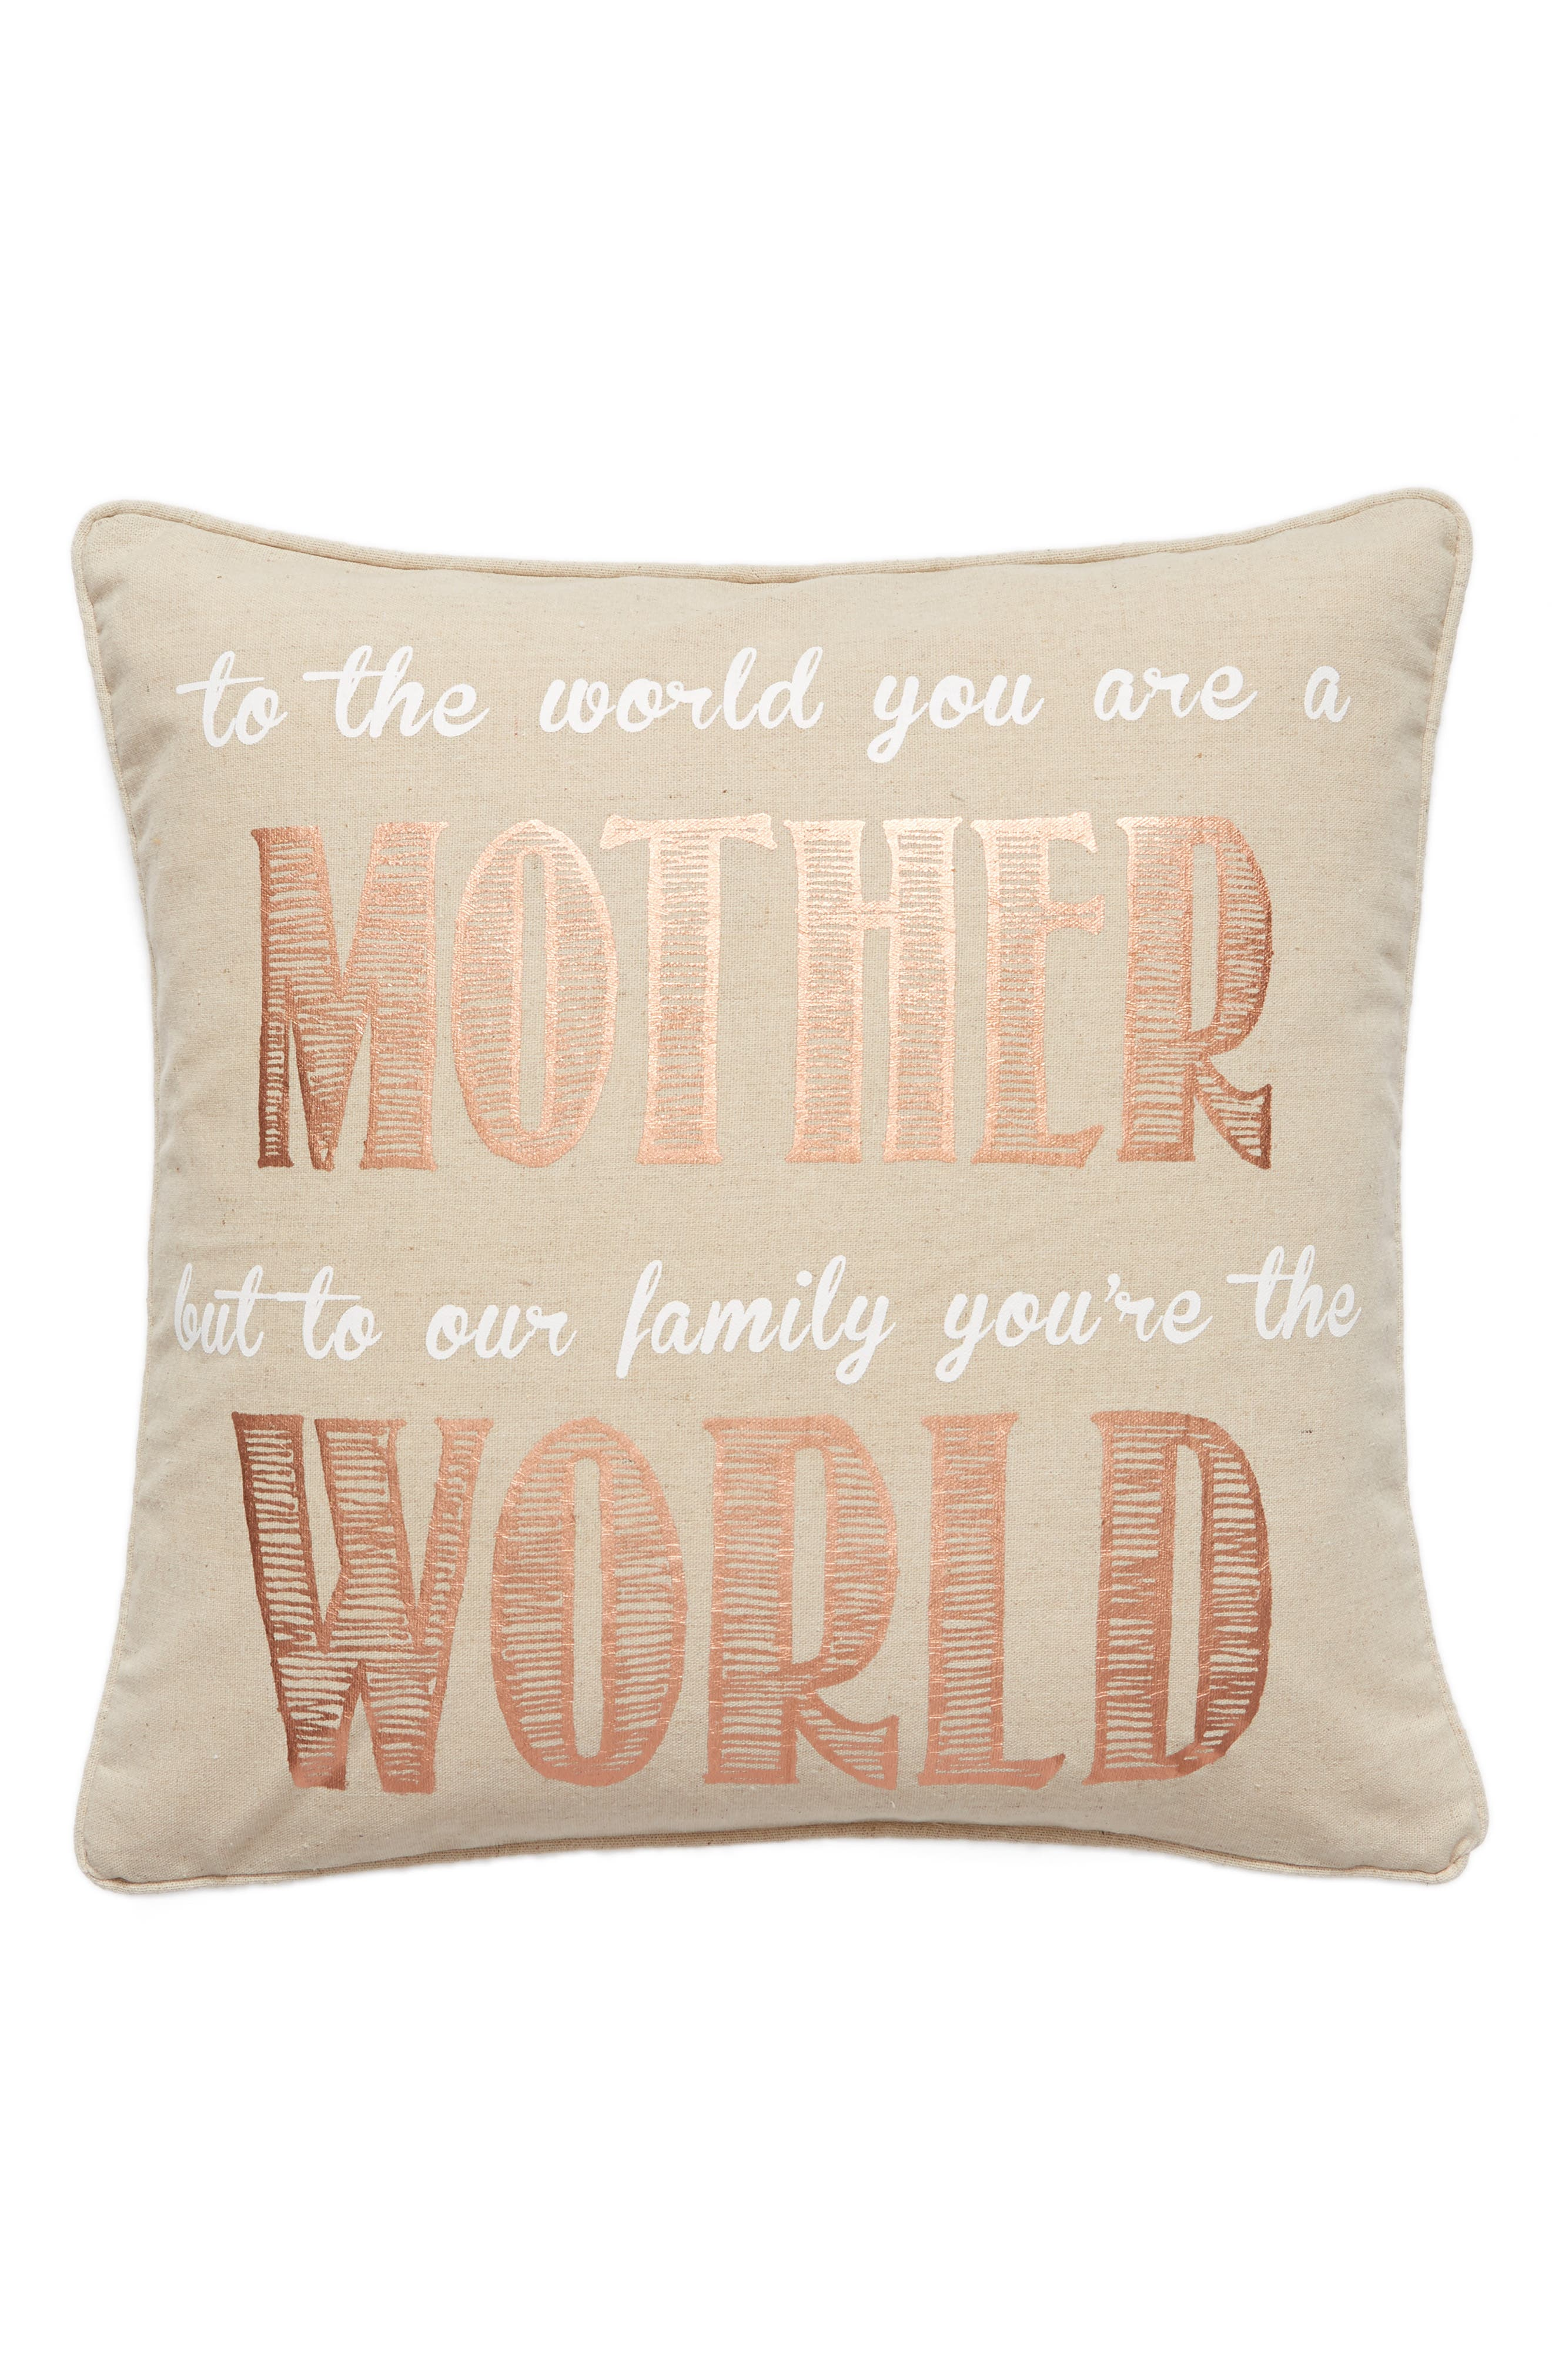 To the World You Are a Mother Accent Pillow,                             Main thumbnail 1, color,                             250